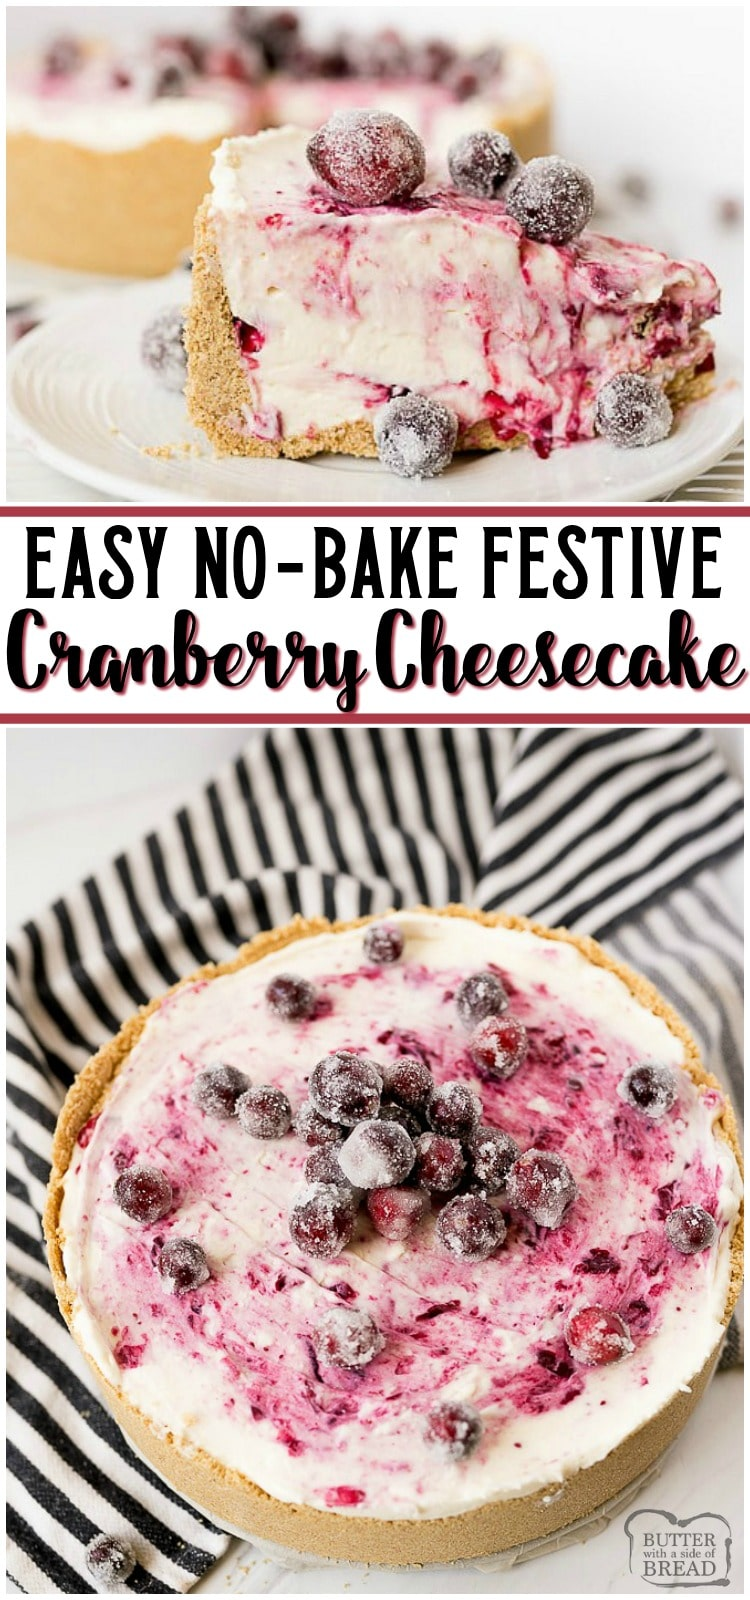 Cranberry Cheesecake Recipe has a fresh cranberry swirl and sugared cranberries as garnish! Easy 4-ingredient NO-BAKE cheesecake filling that's perfect for beginners. #cheesecake #cranberries #winter #holidays #christmas #dessert #nobake #recipe from BUTTER WITH A SIDE OF BREAD